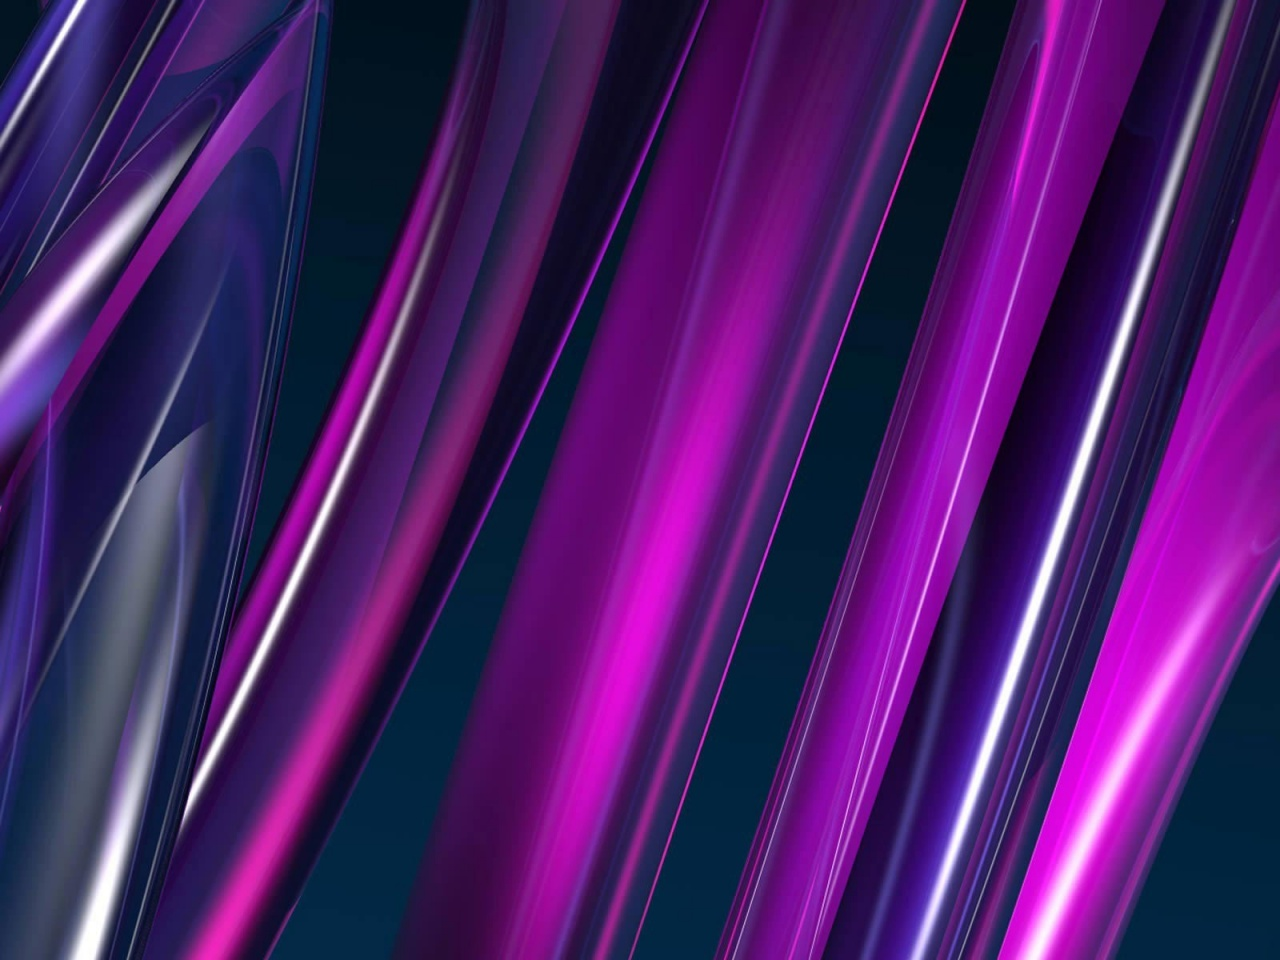 1280x720 Purple, rainbow